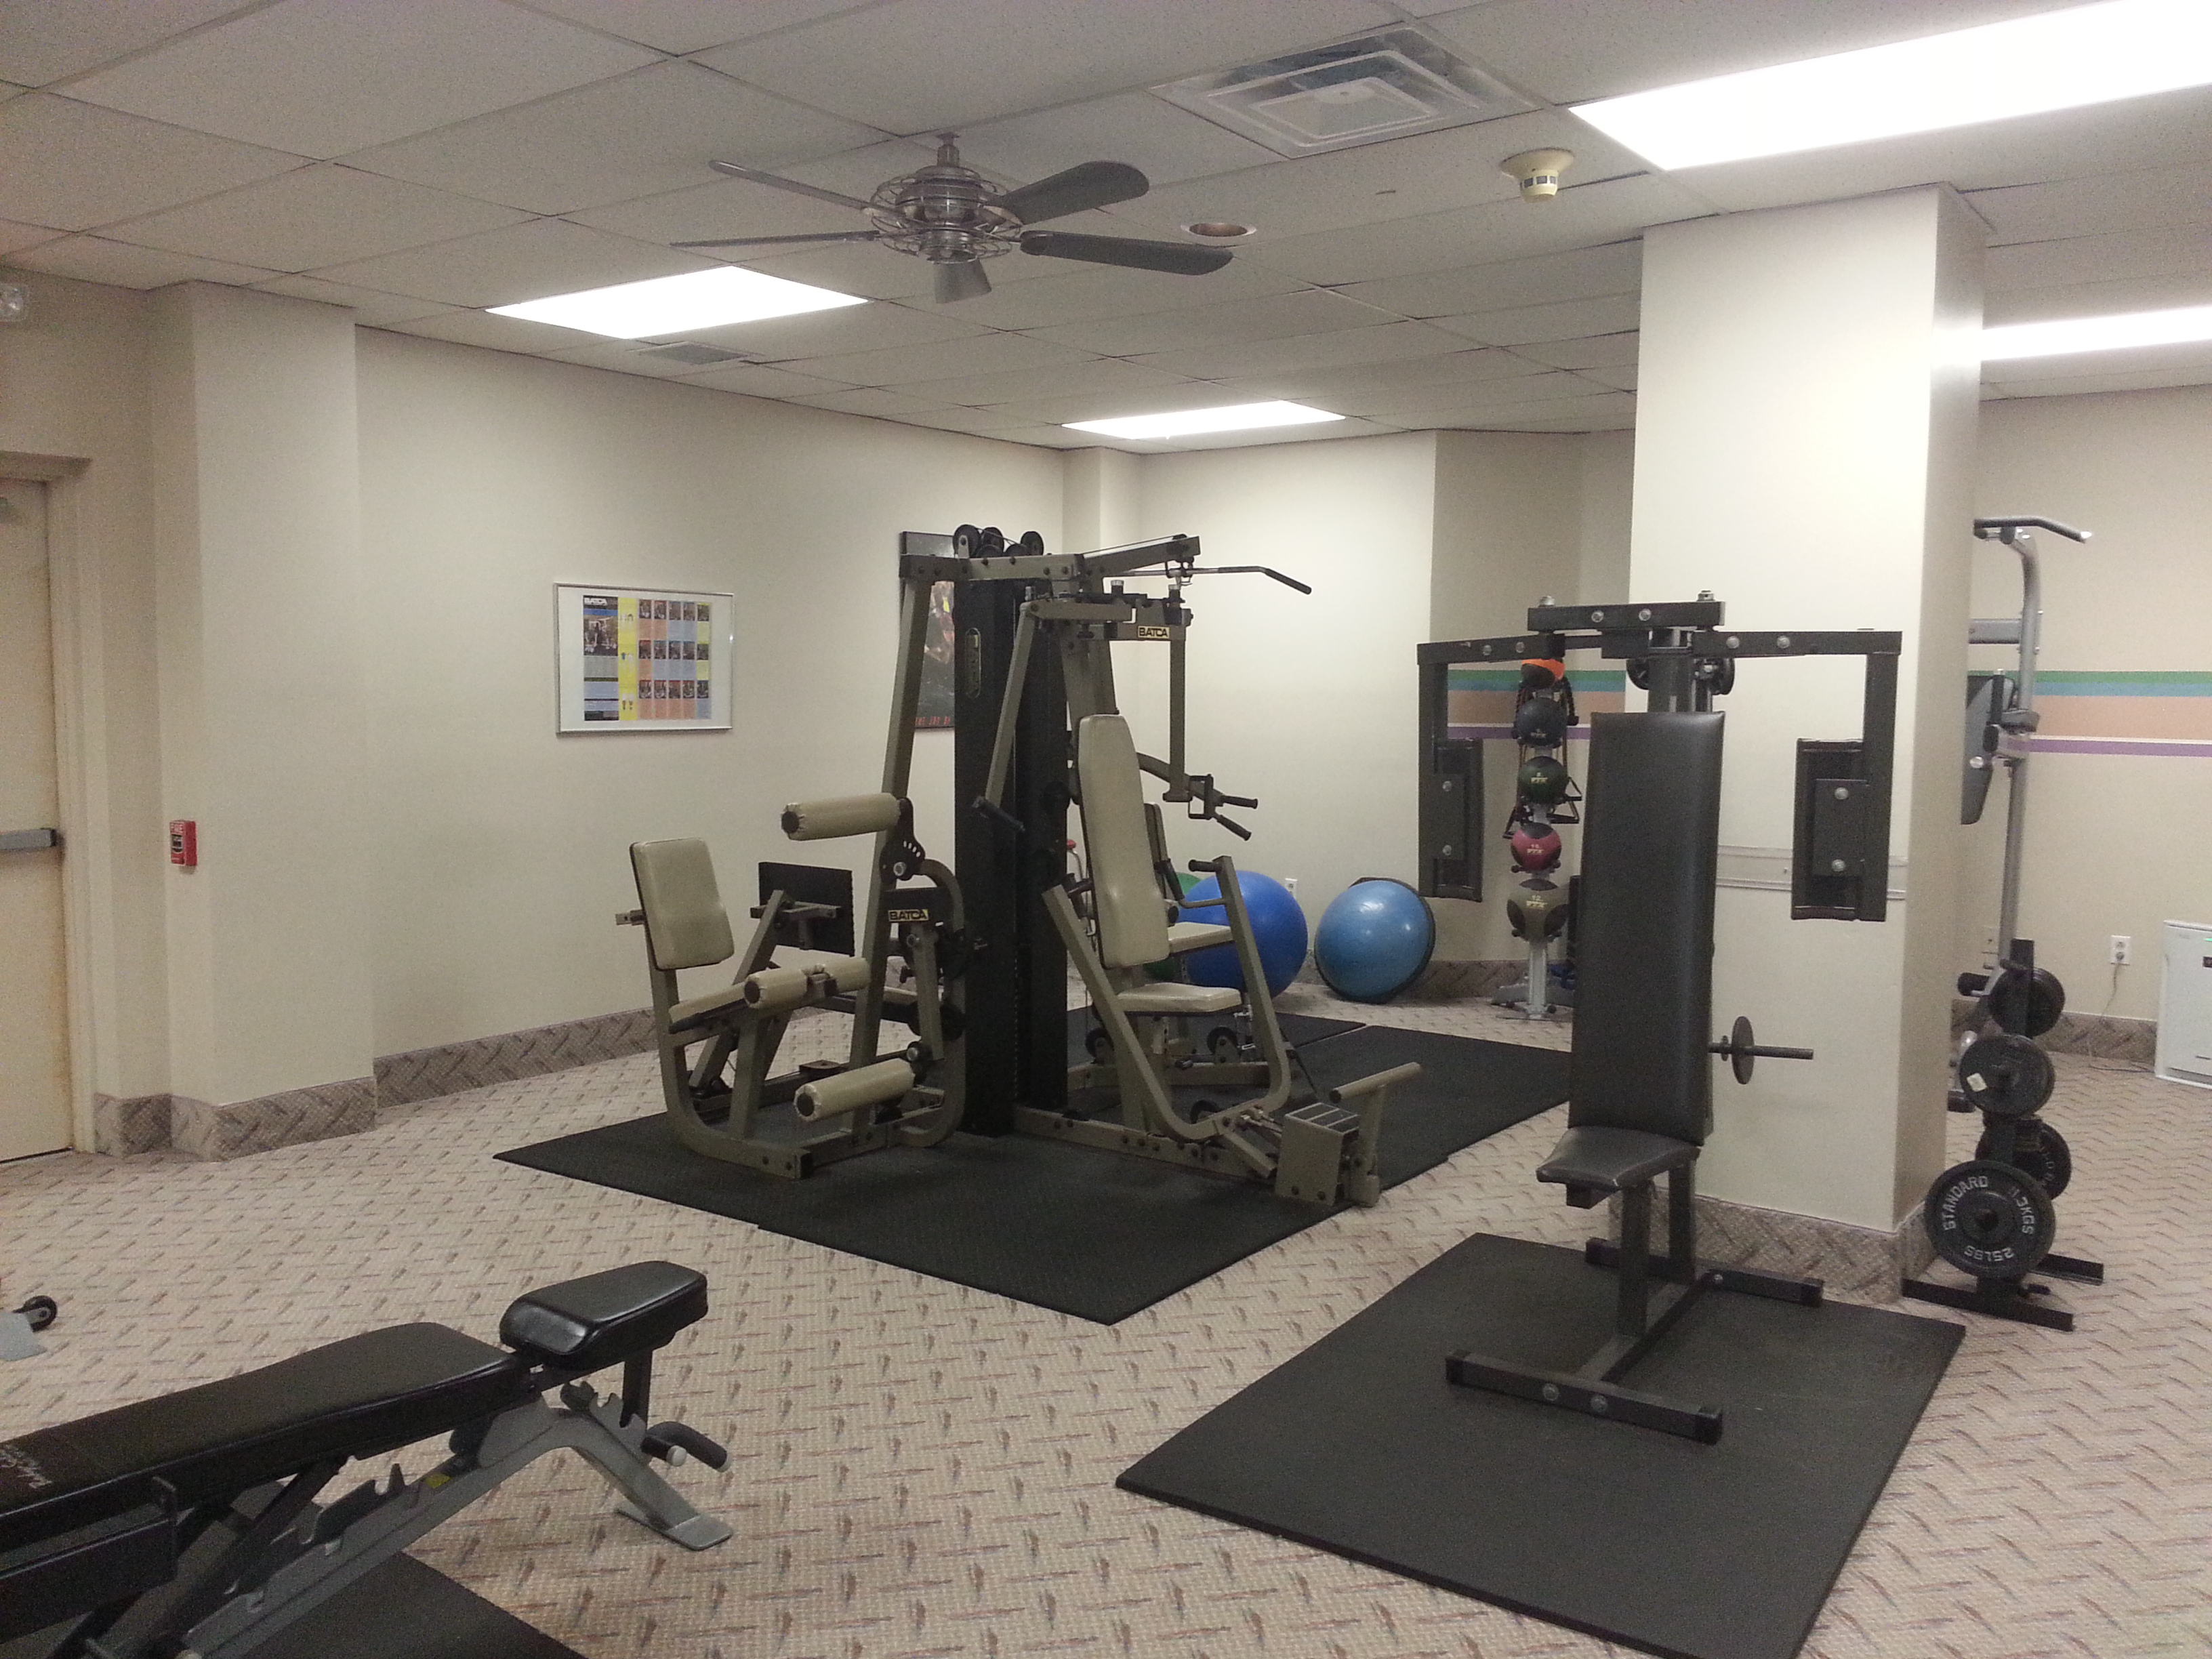 The fitness room has free weights and weight machines plus his/hers lockers and showers.